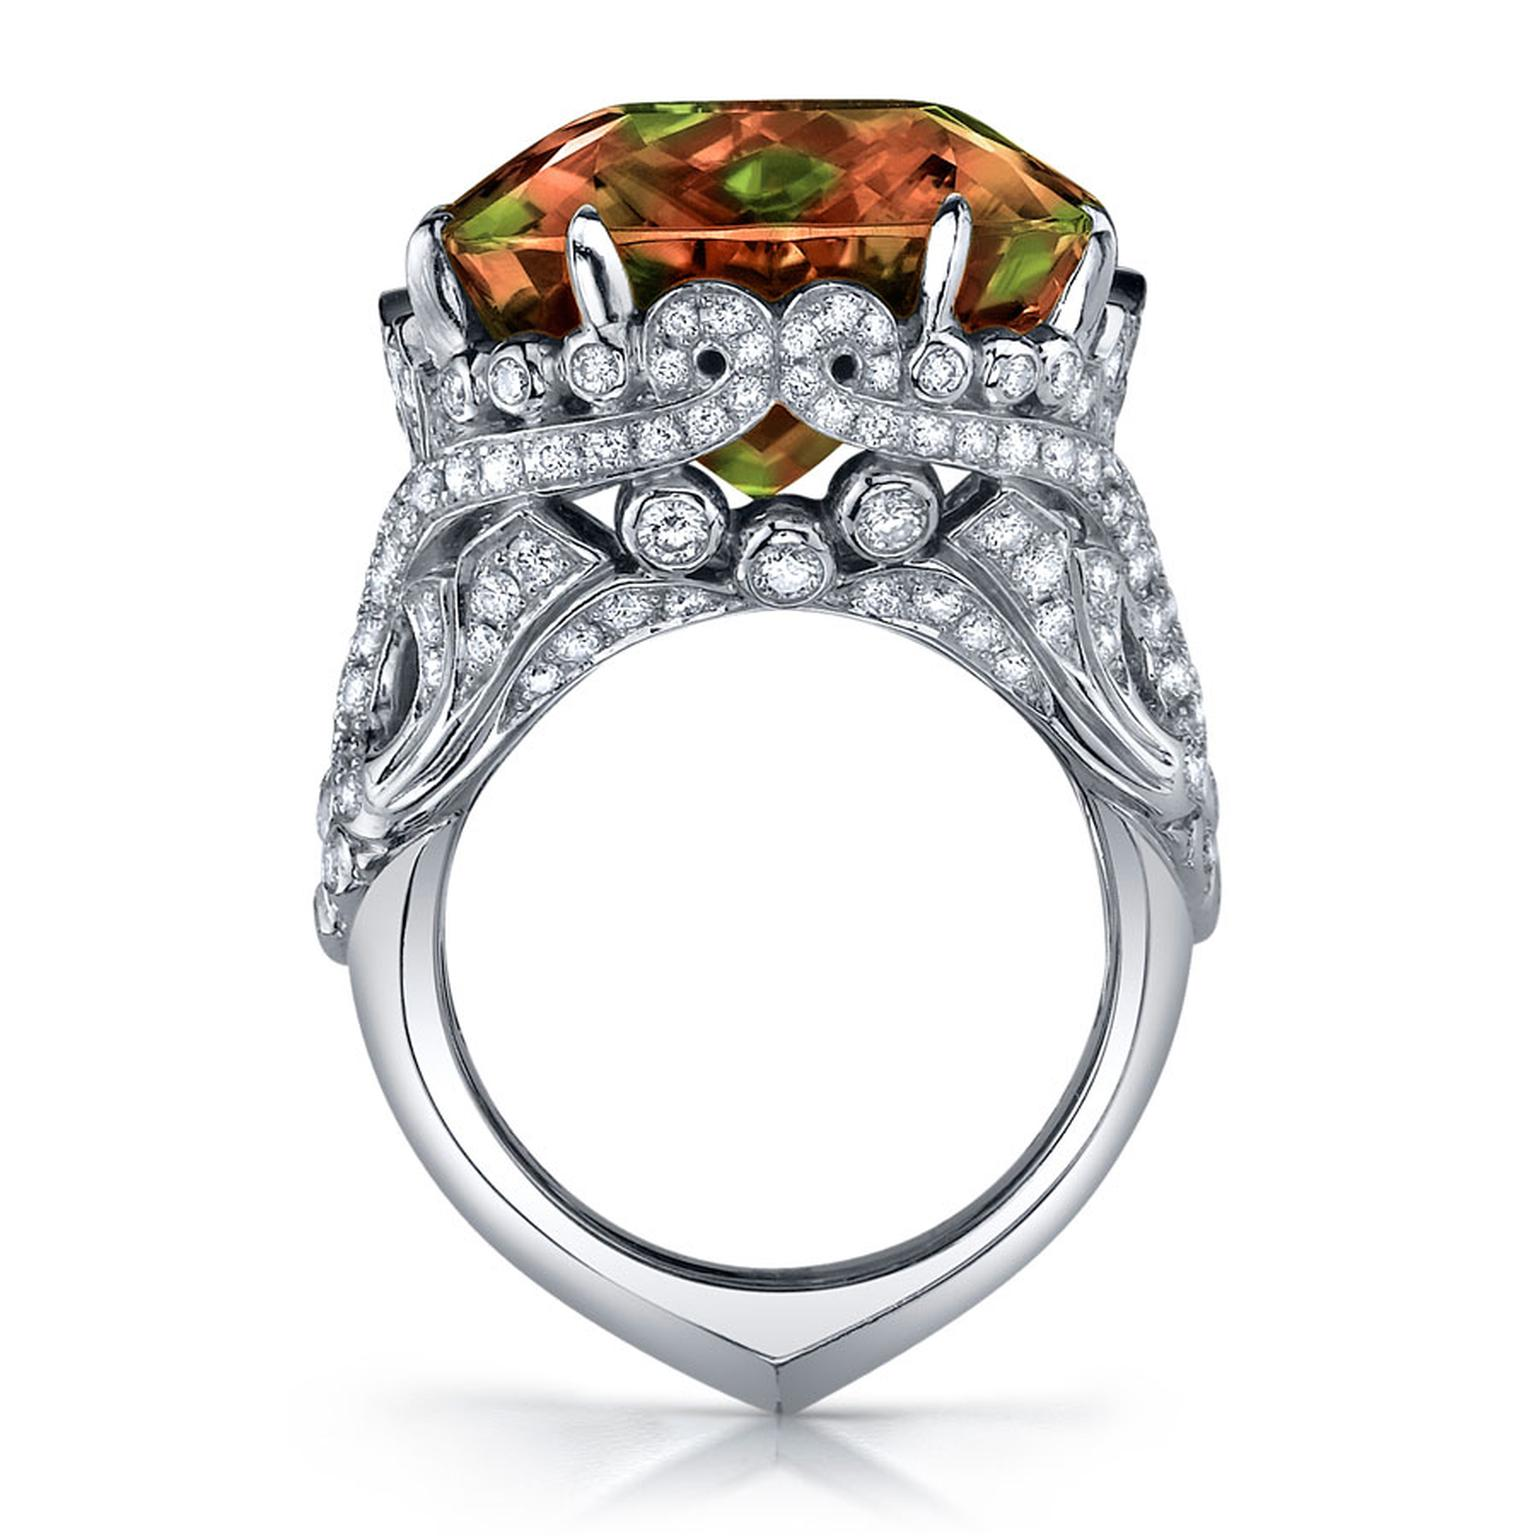 Stephen-Webster-Couture-Ring-with-Zultanite